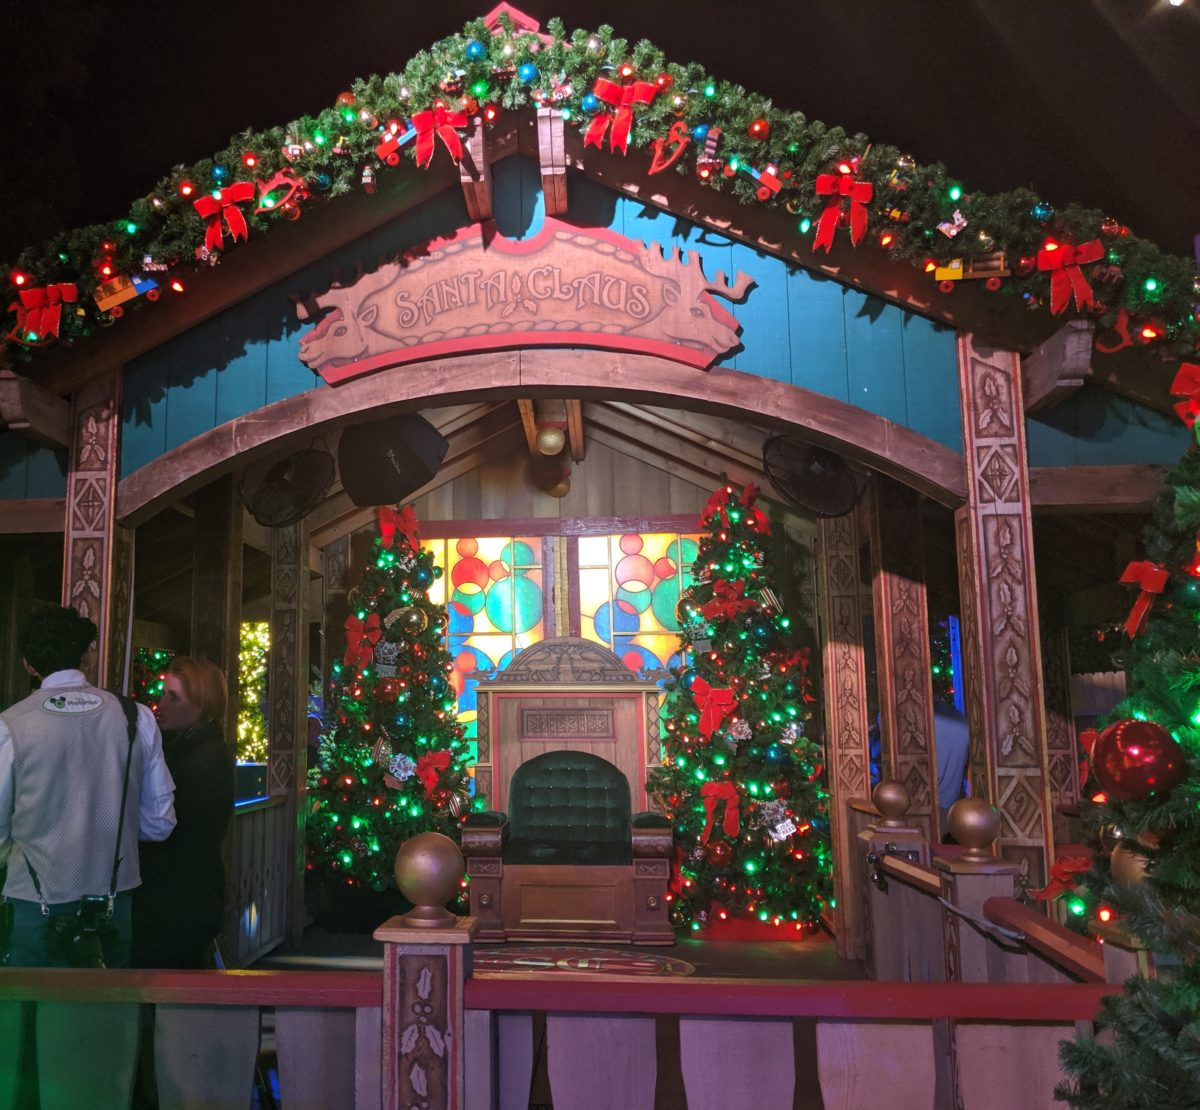 Disney Springs Christmas Tree Trail is a wonderful holiday experience for the whole family